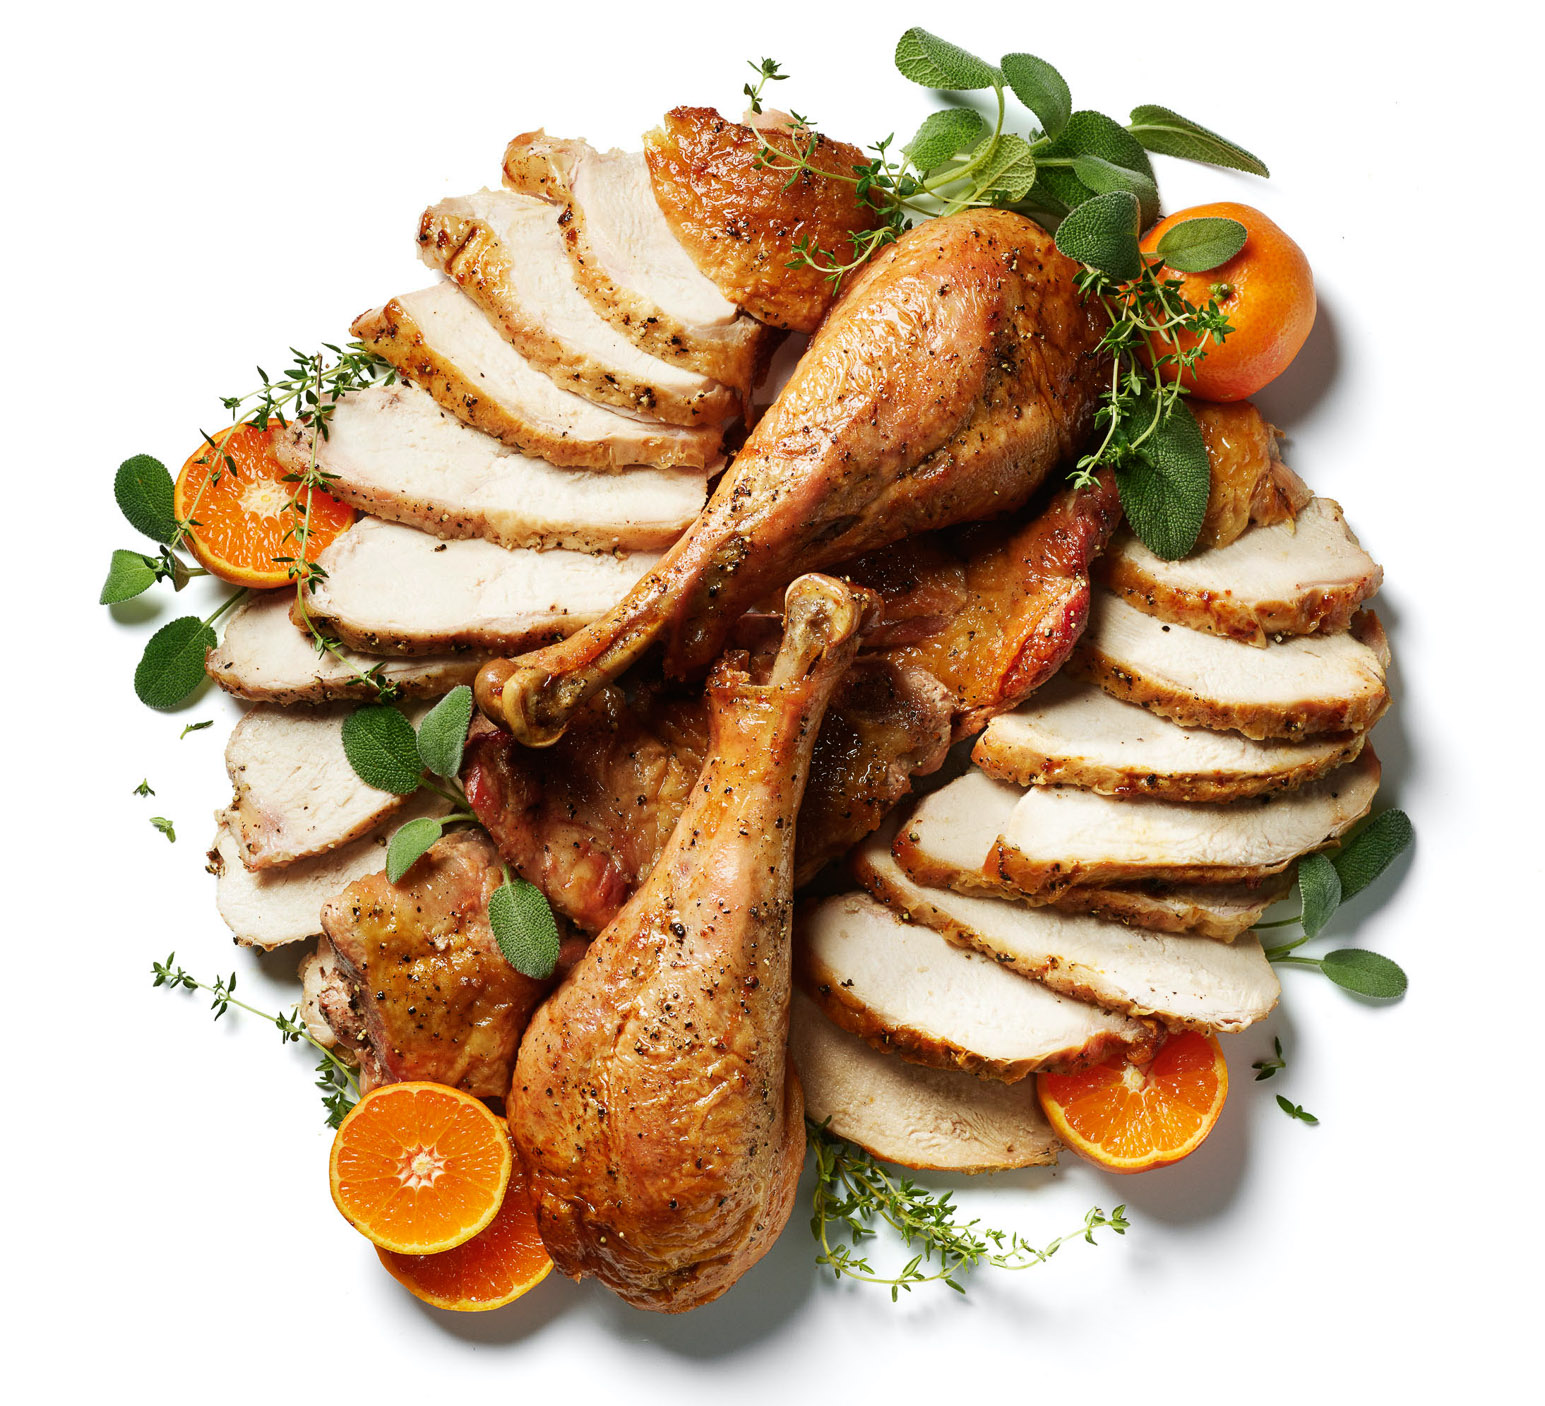 037_Whole_Foods_Sliced_Turkey-110